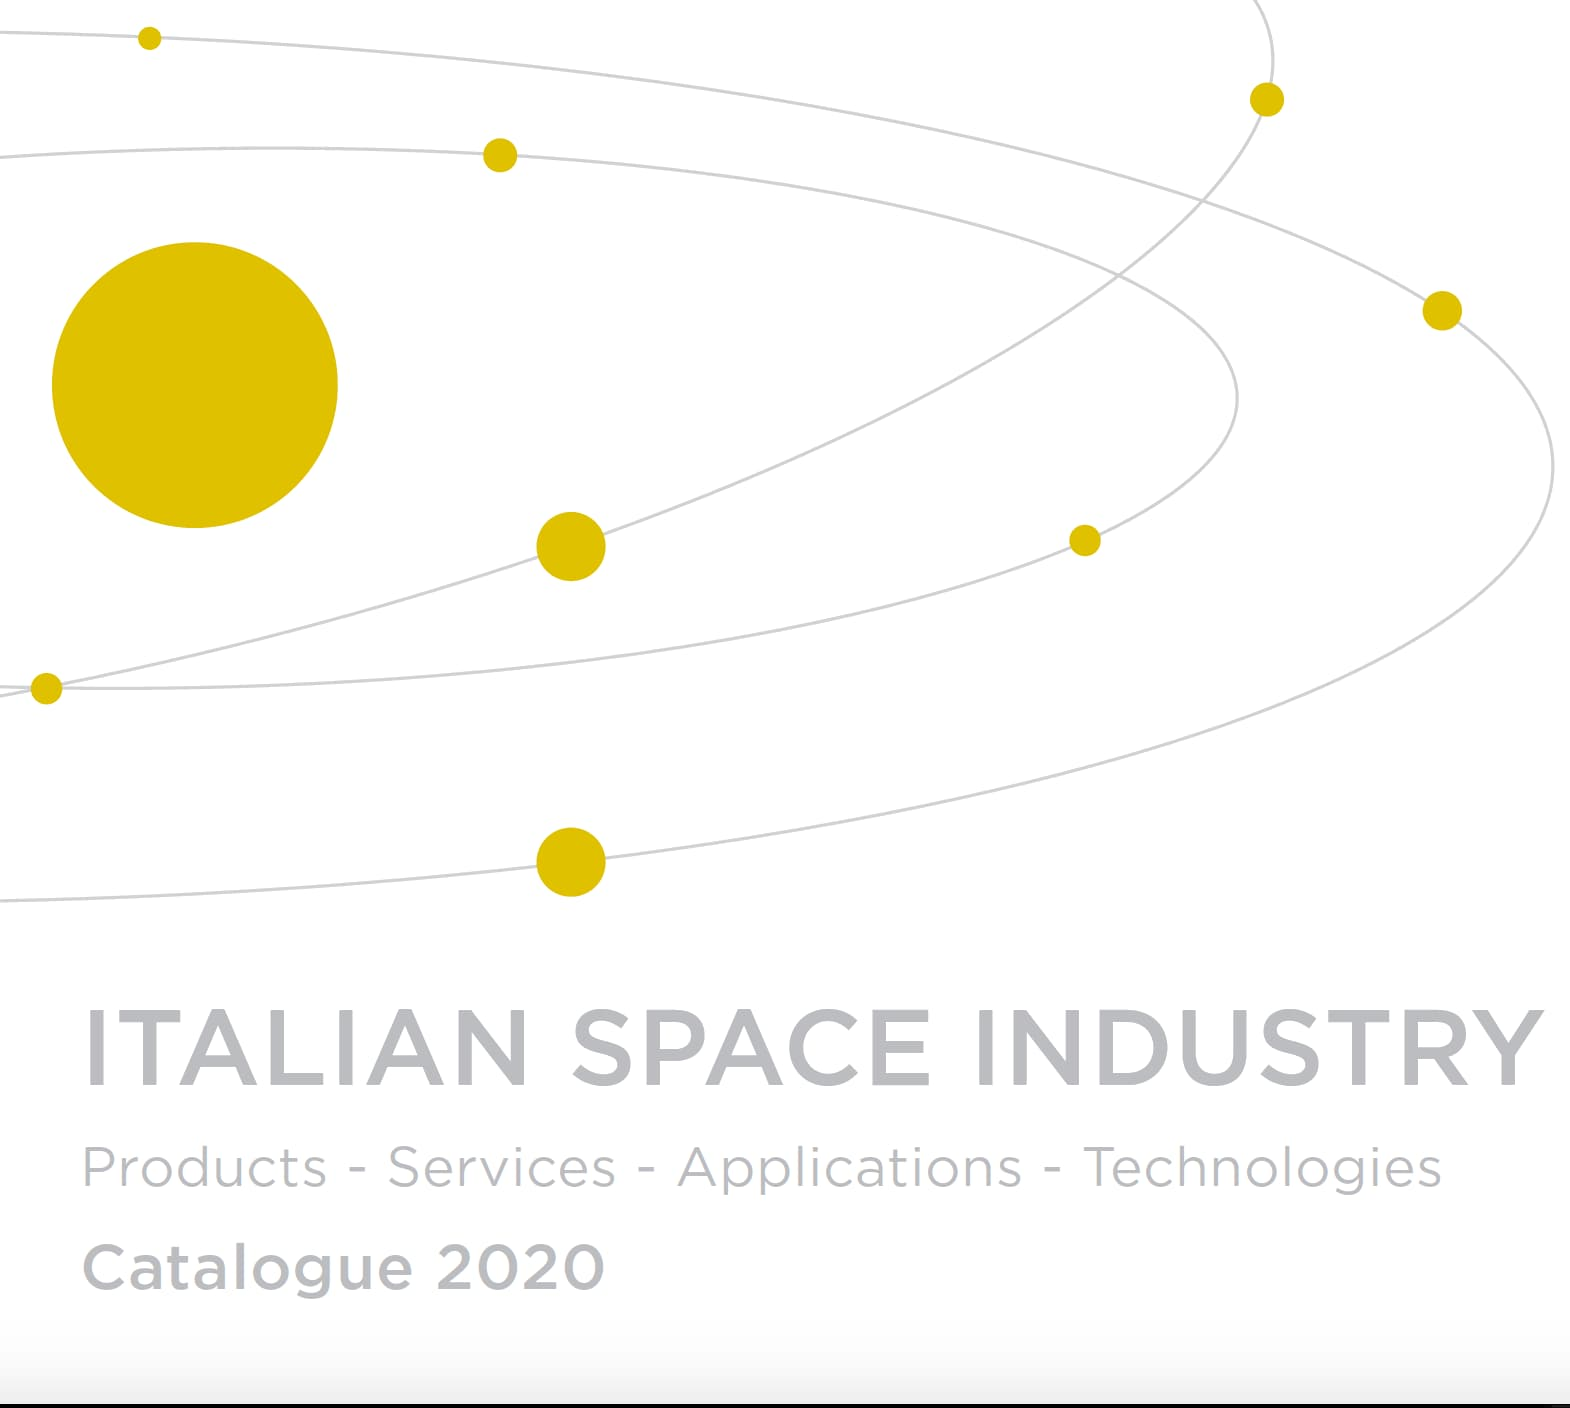 ASI - The Italian Space Industry Catalogue